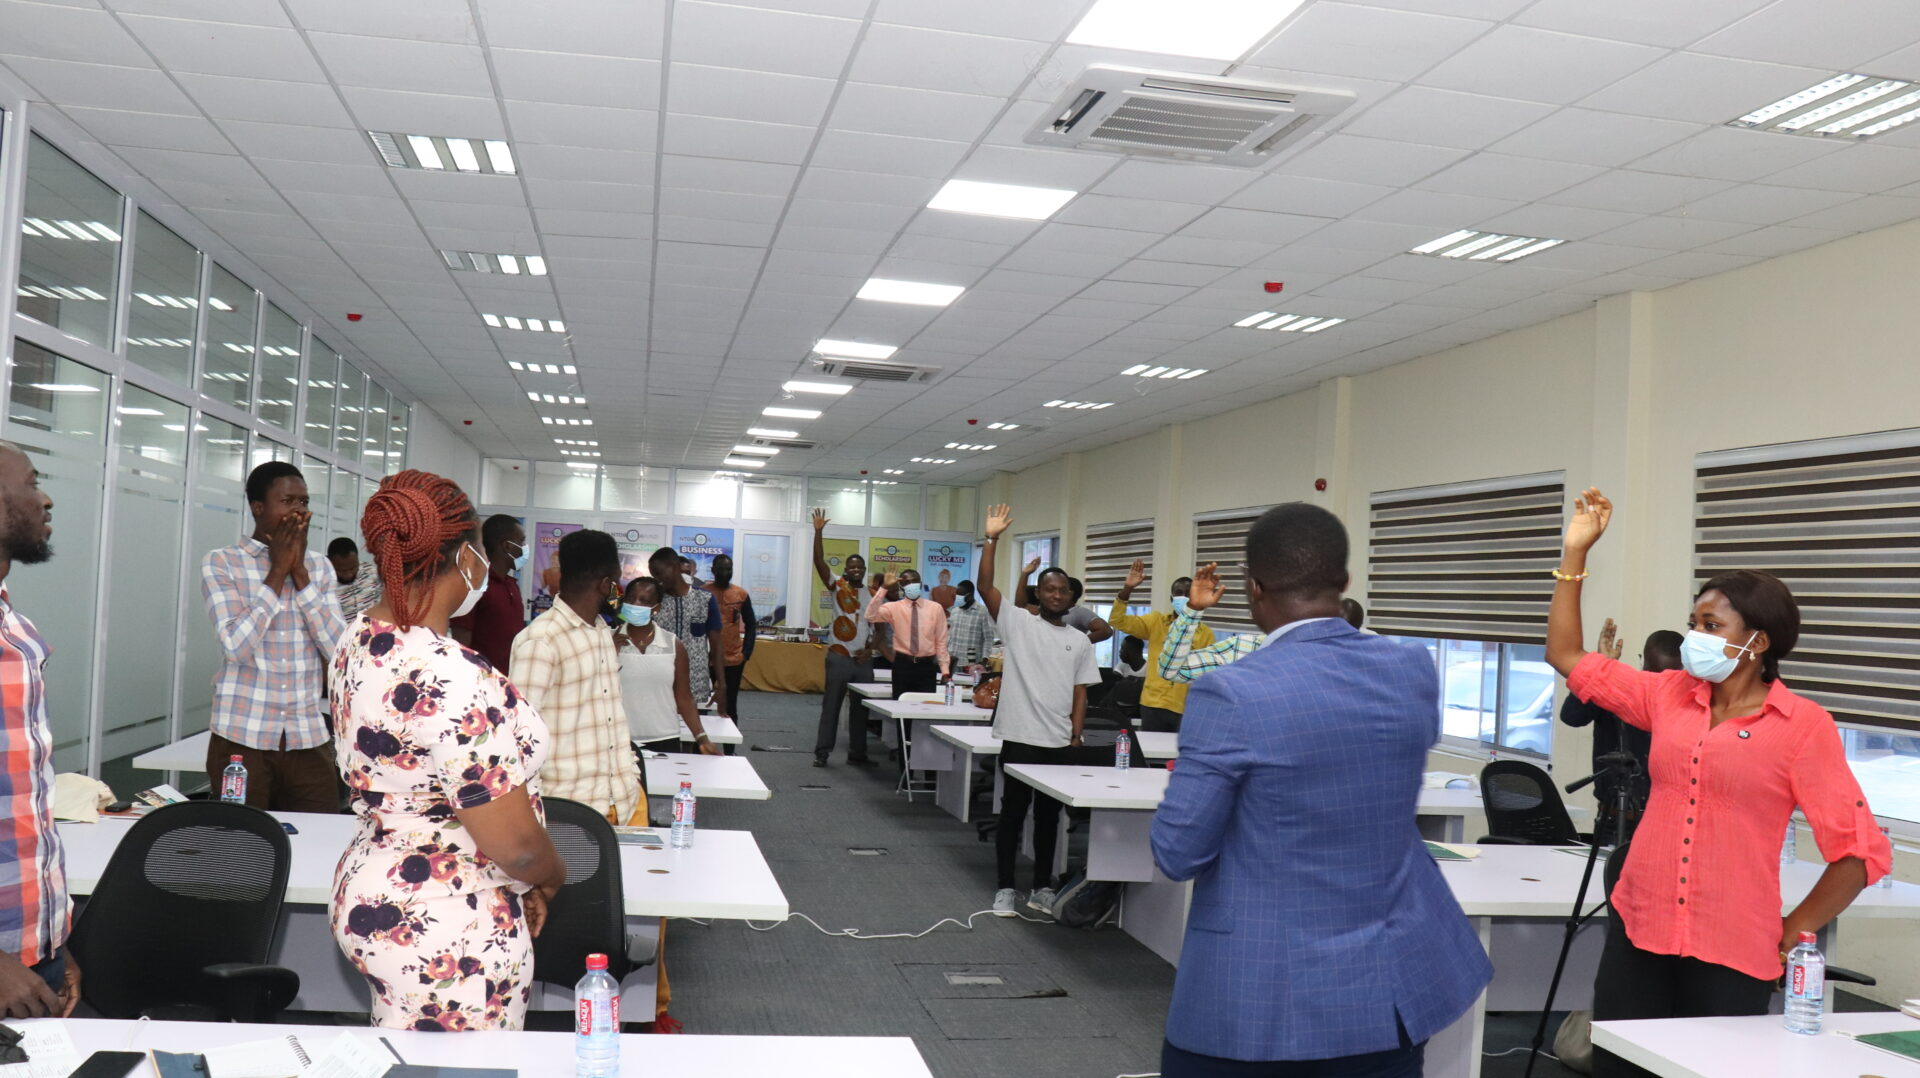 Beyond Covid-19 crisis hackathon by enpact Ghana took place at Accra Digital Centre.